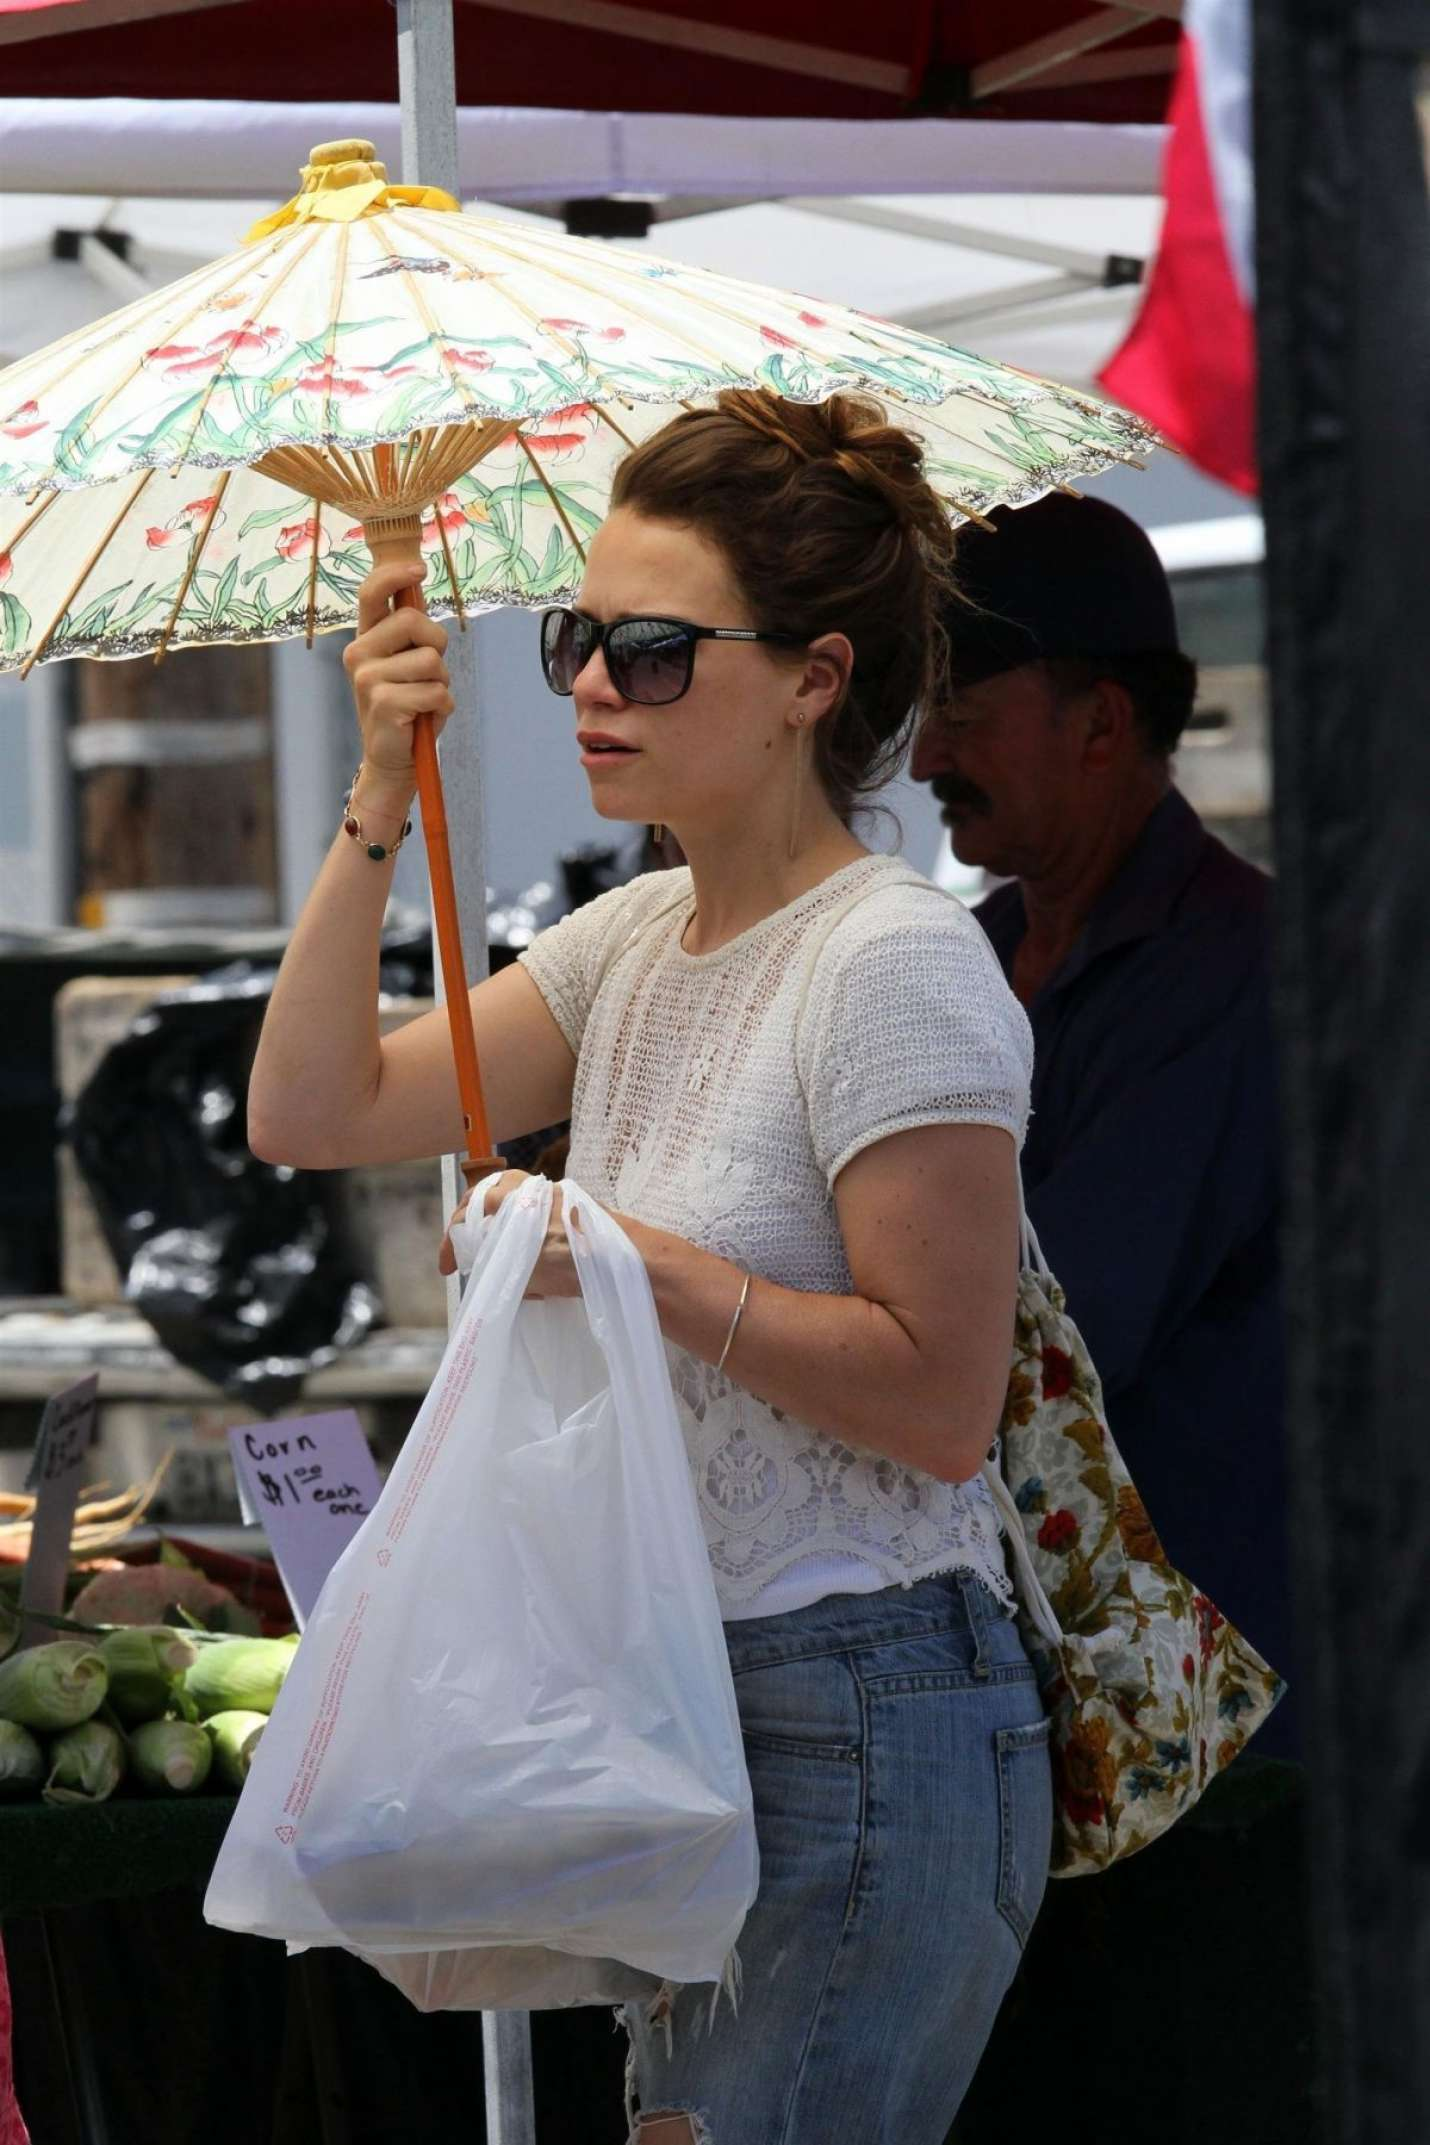 Bethany Joy Lenz 2017 : Bethany Joy Lenz: Shopping at Farmers Market -05